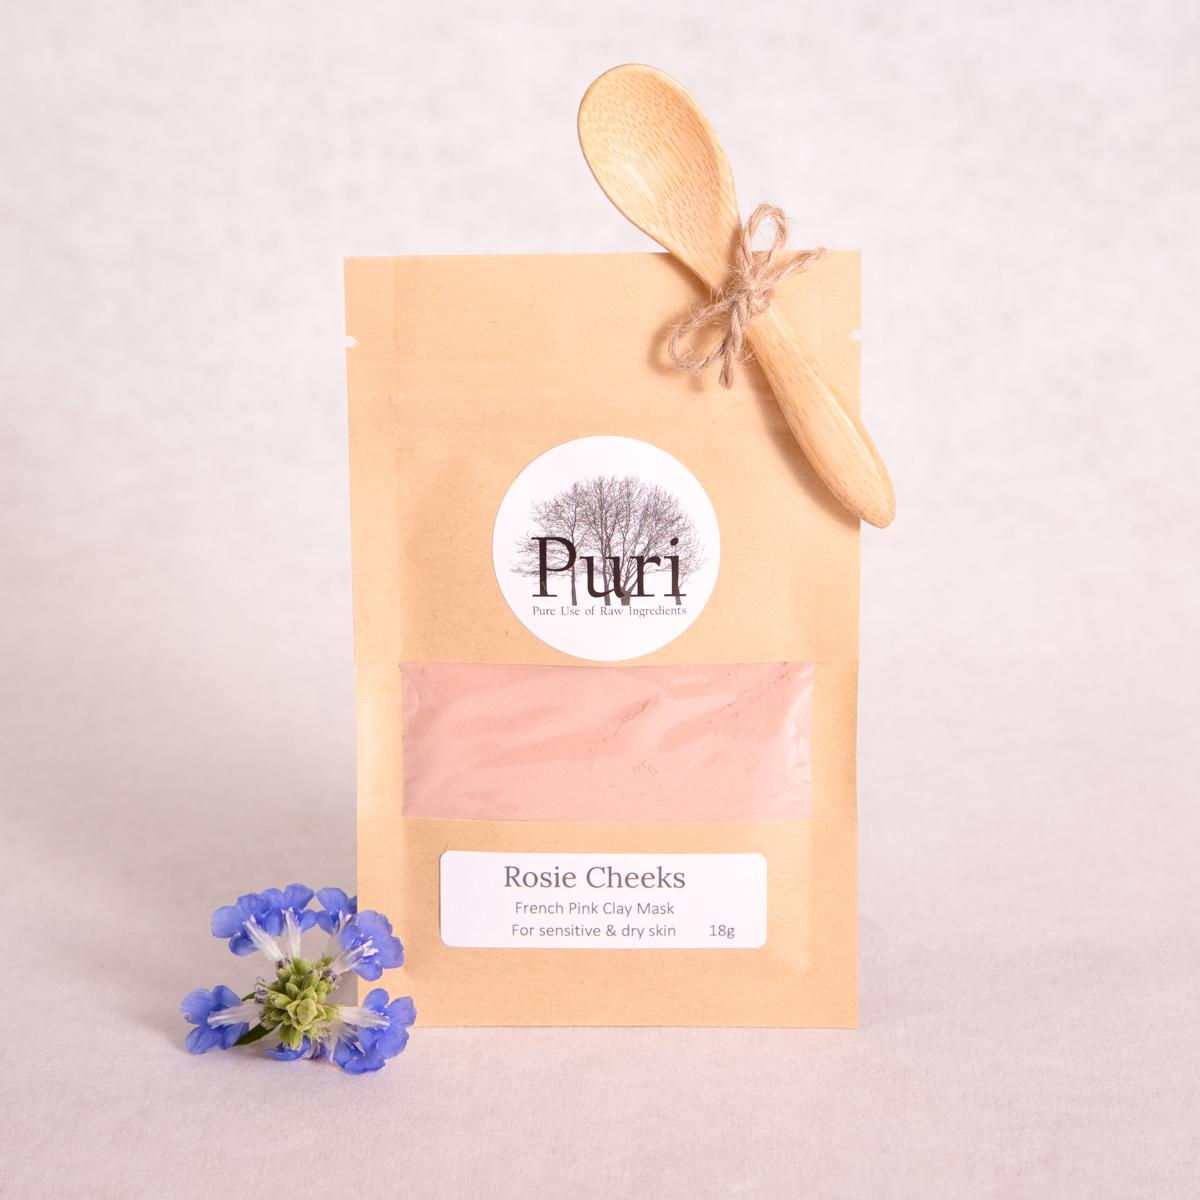 'Rosie Cheeks' French Pink Clay Mask - 18g - Clay Mask - Throw Some Seeds - Australian gardening gifts and eco products online!